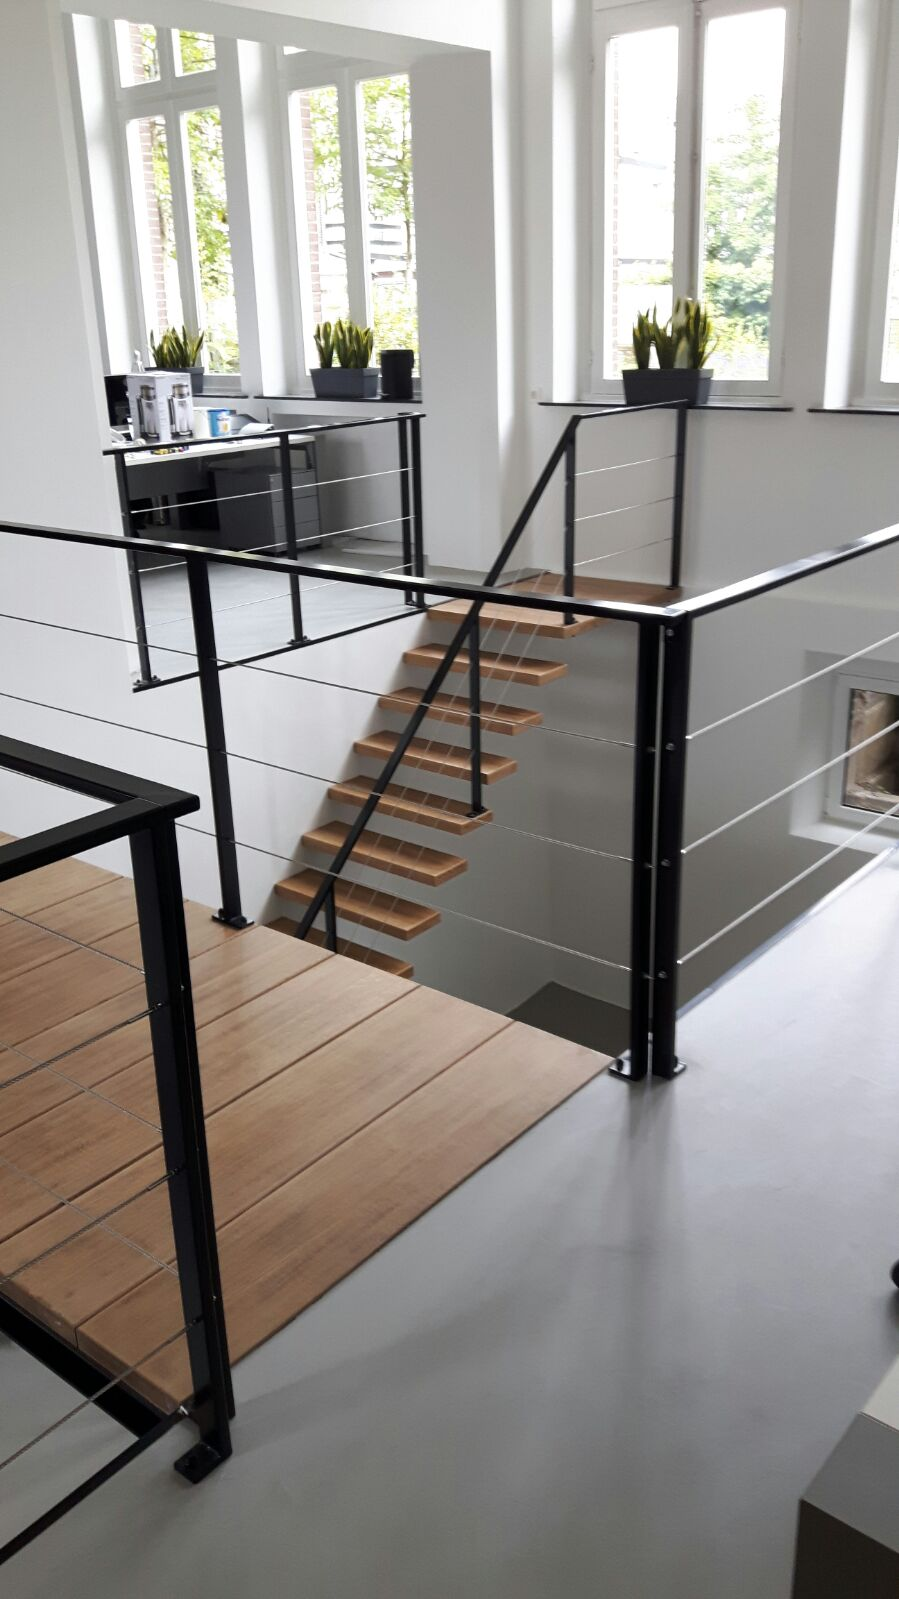 Balustrade met RVS spankabels